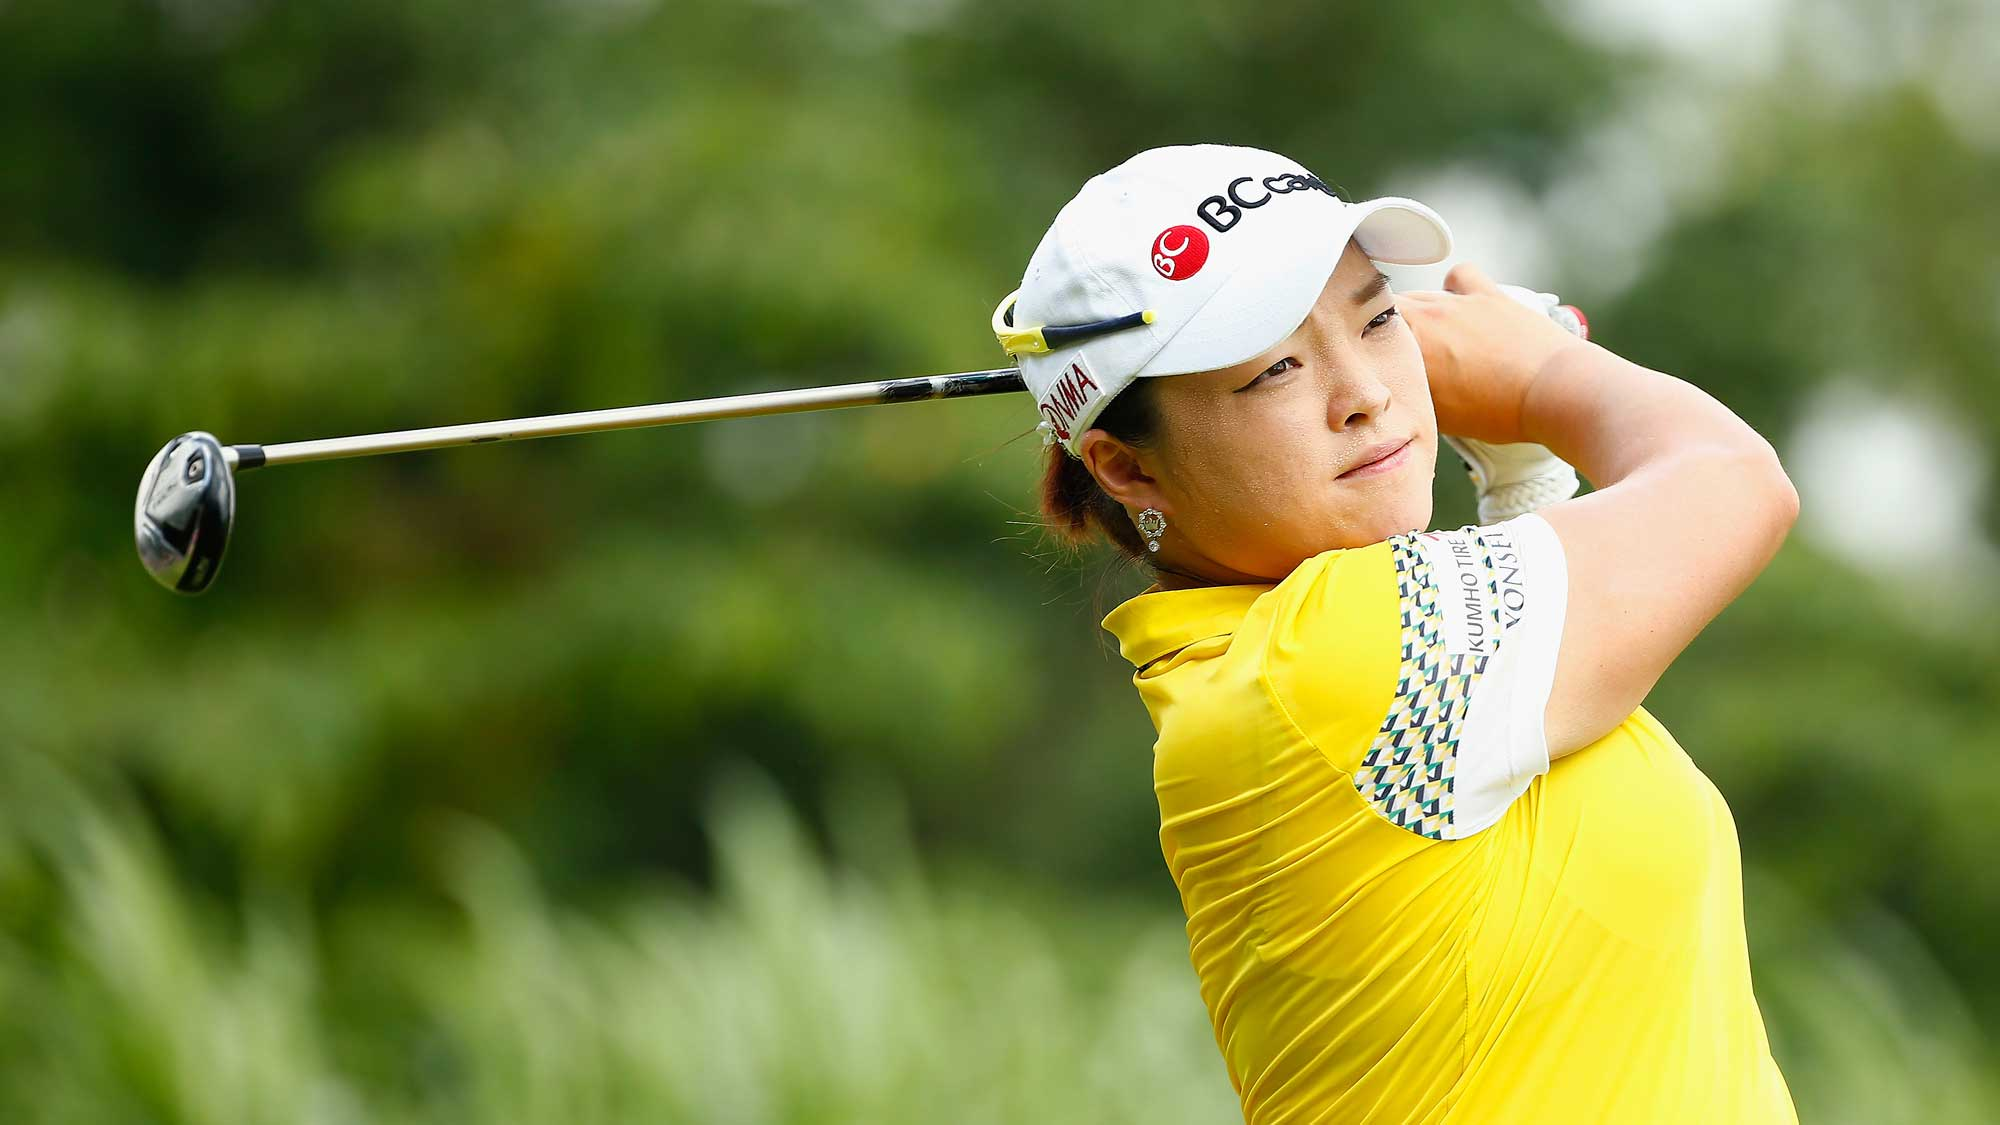 tools of champion  ha na jang wins in singapore